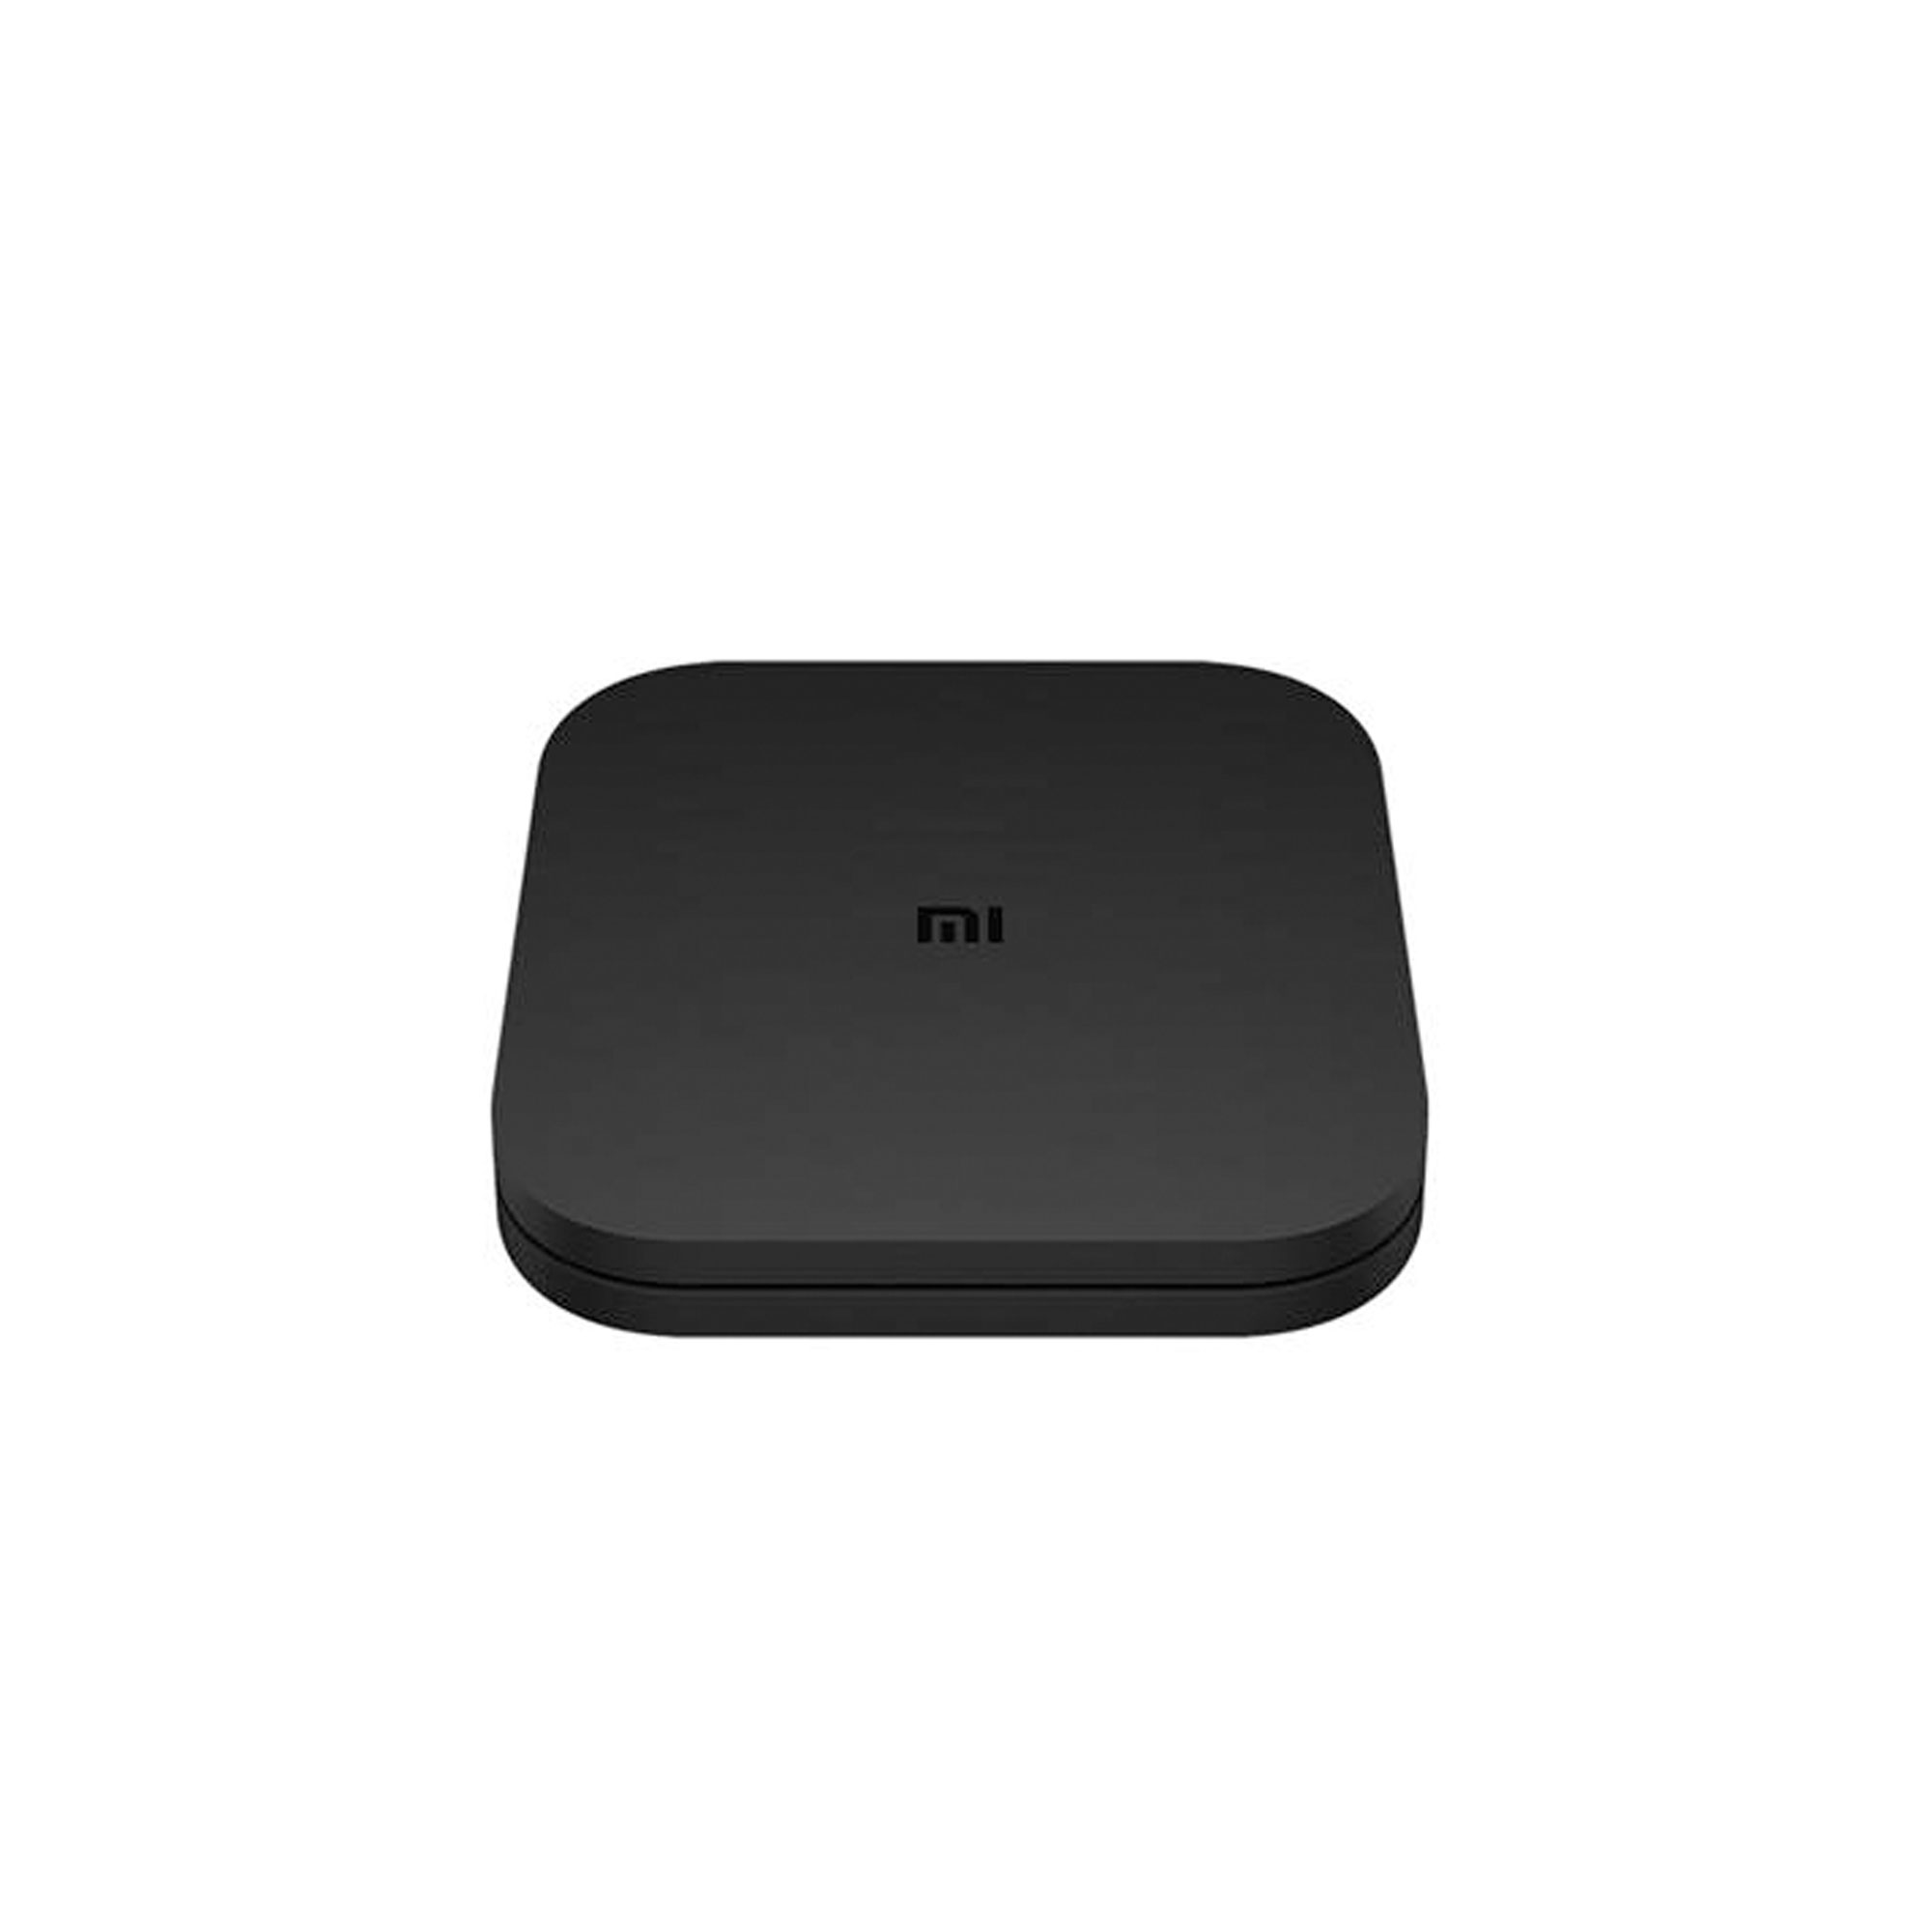 Mi Box S 4k Ultra HD Set-top box